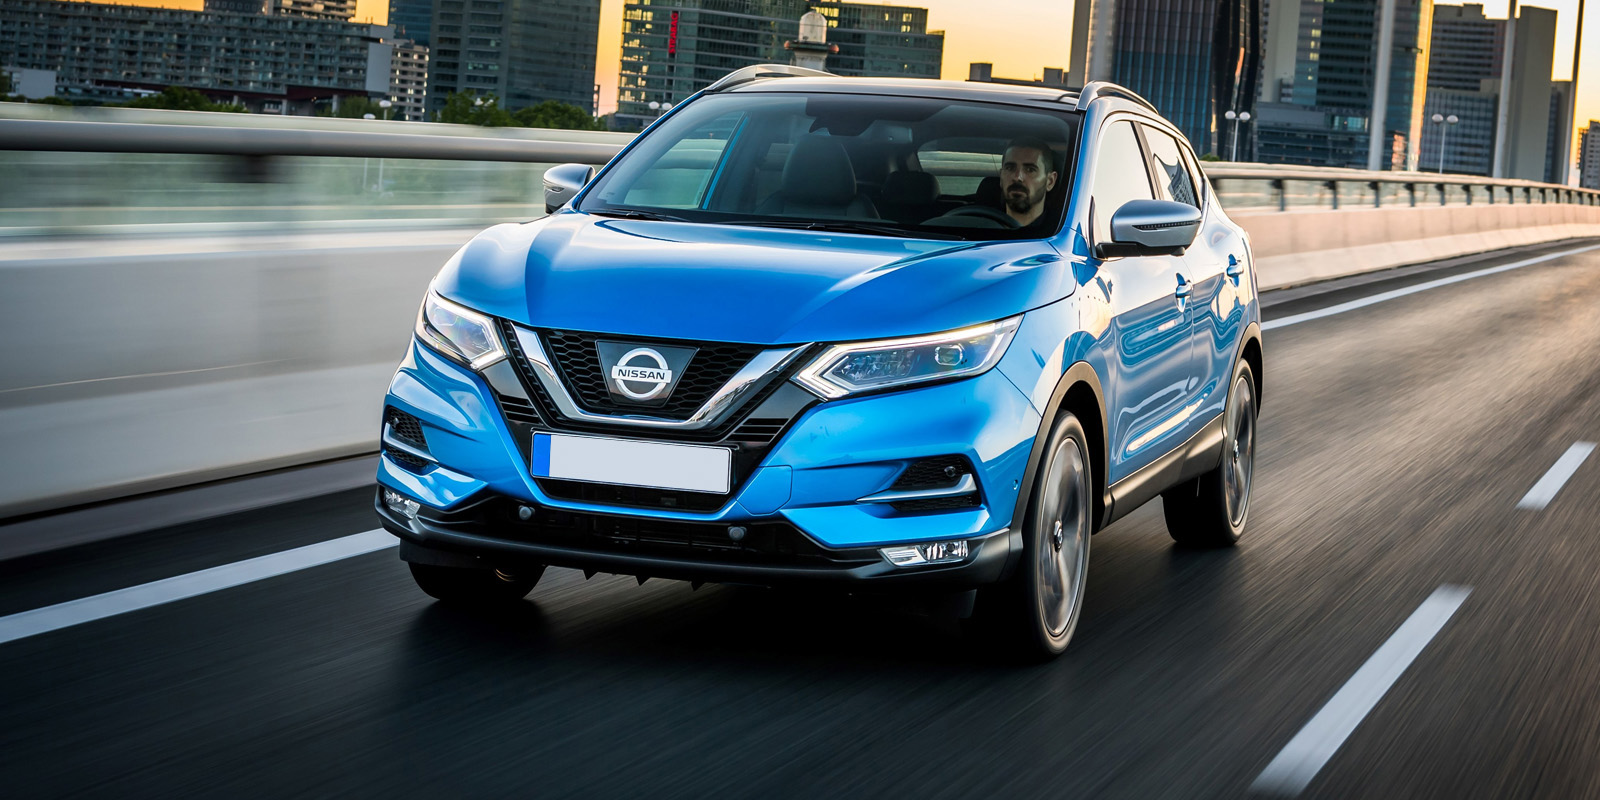 Nissan Qashqai Size And Dimensions Guide Carwow